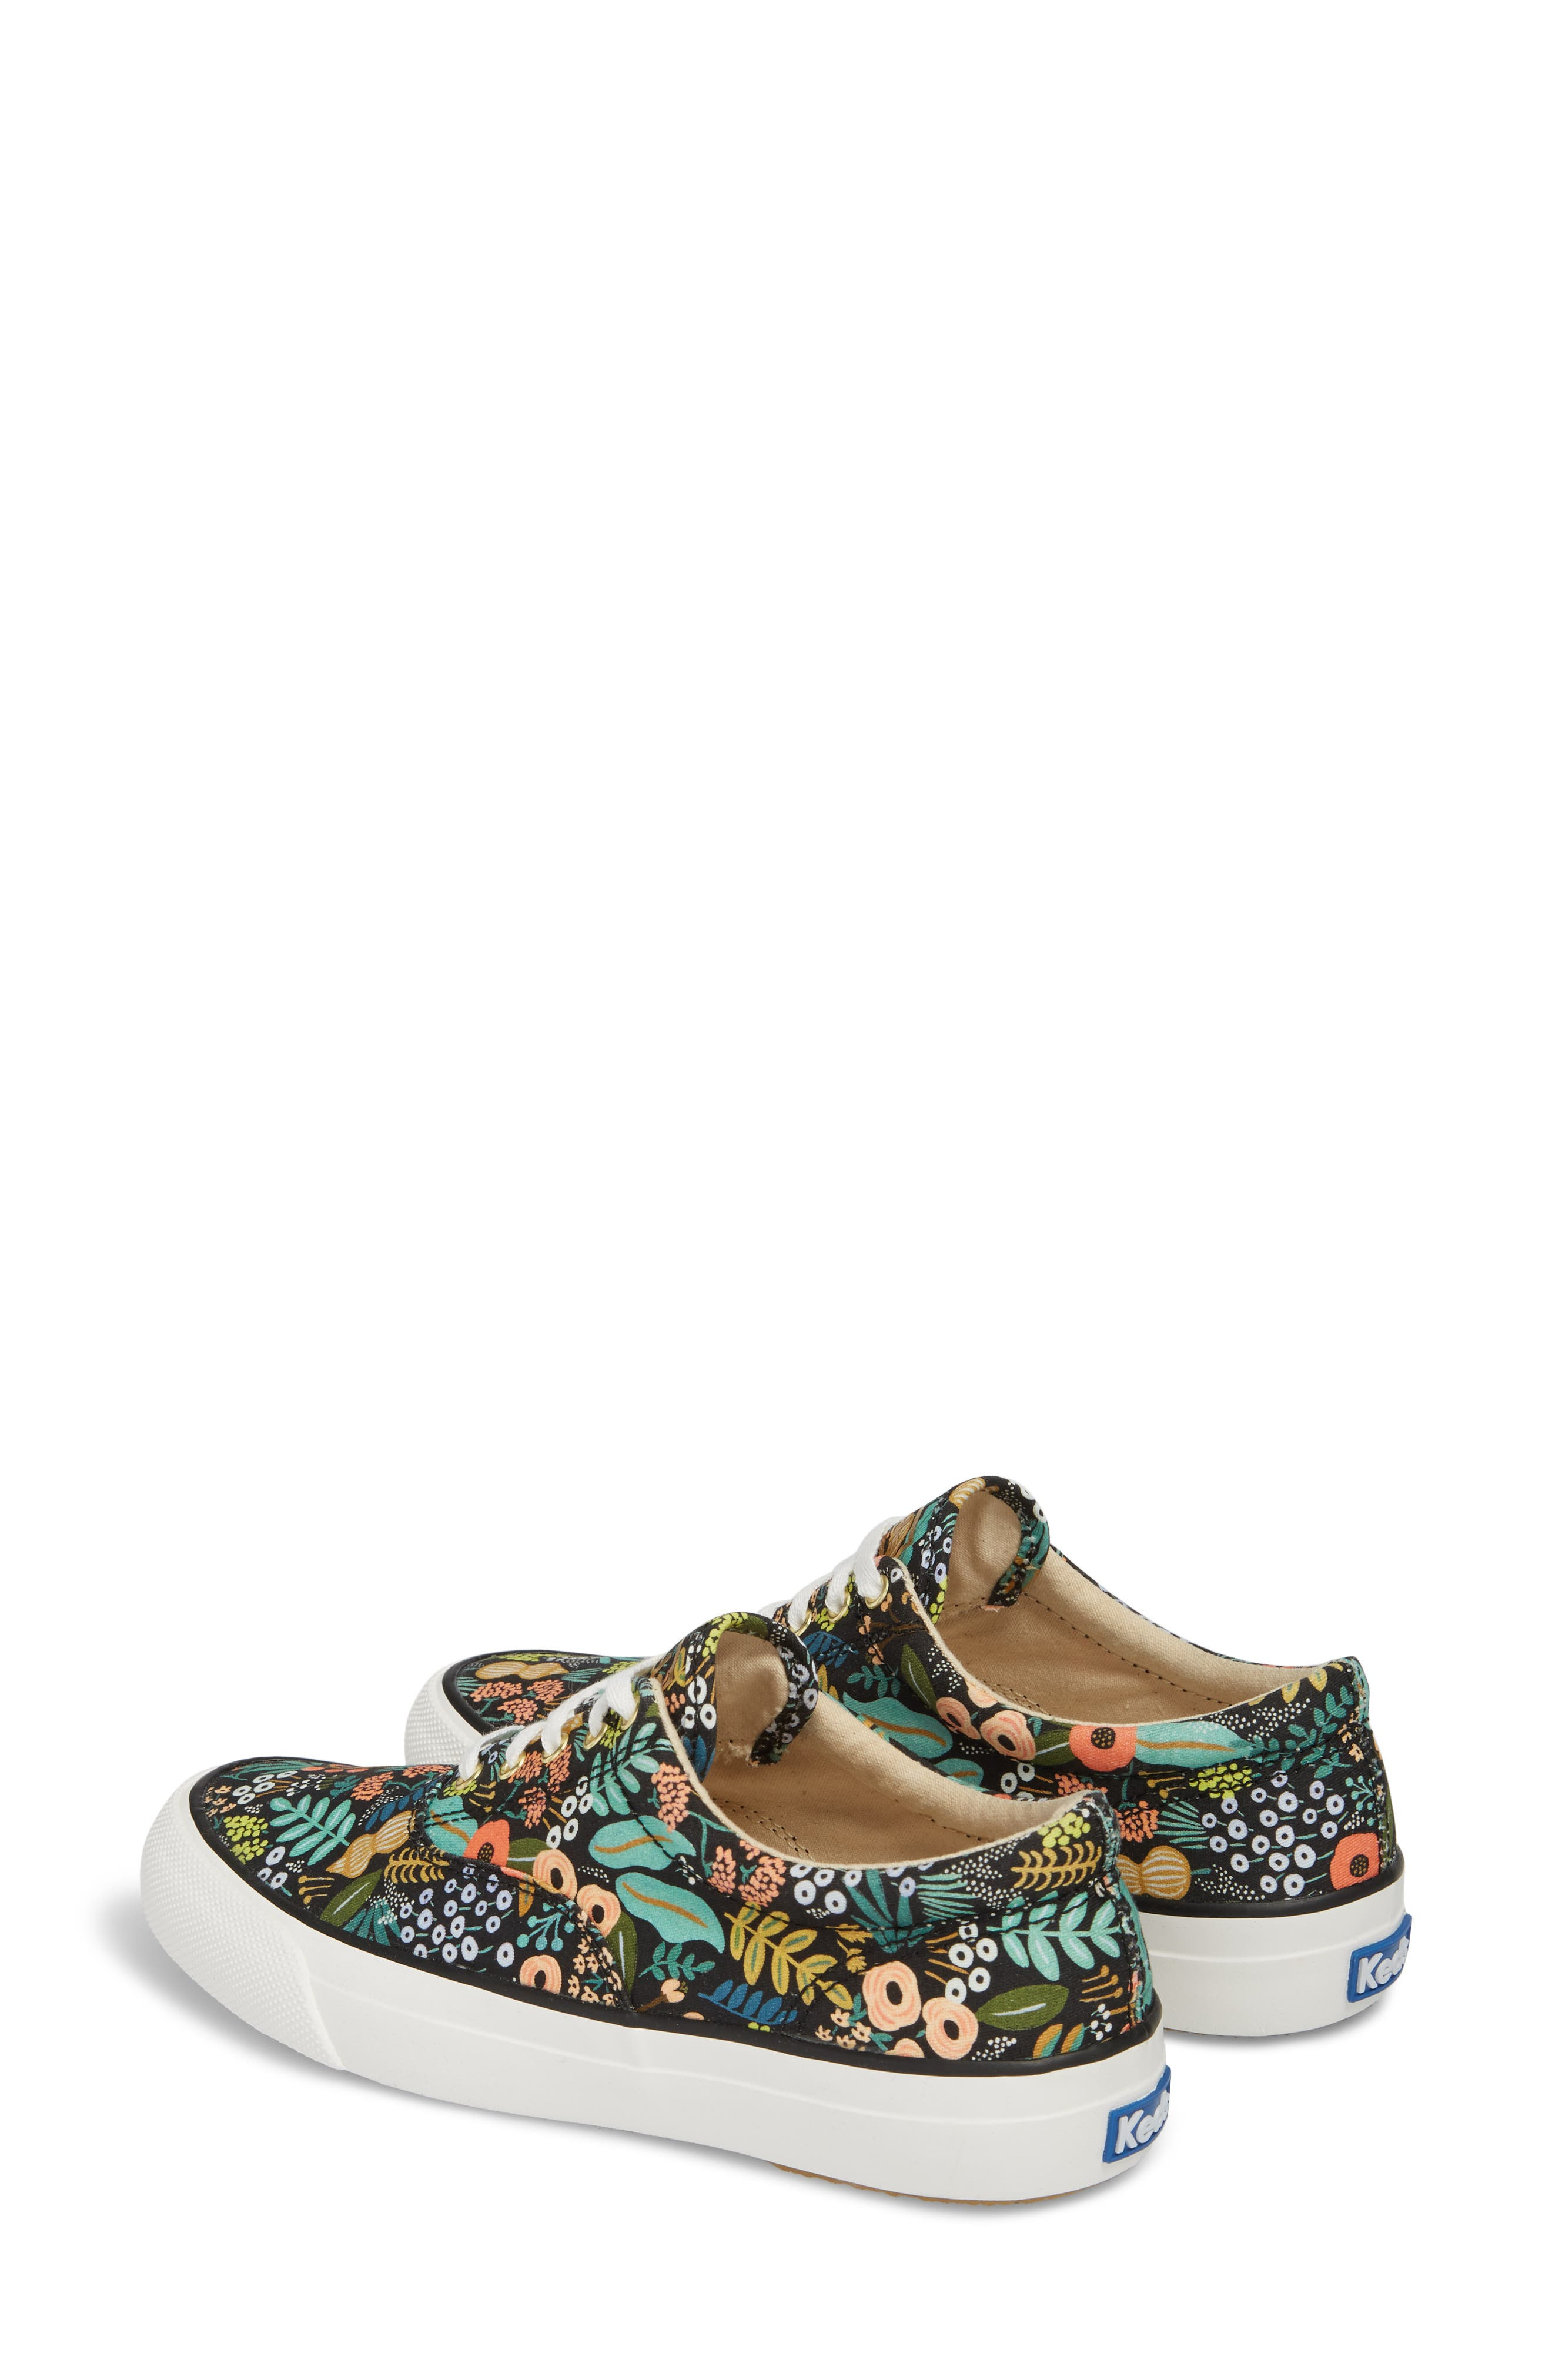 KEDS<SUP>®</SUP>, x Rifle Paper Co. Anchor Lively Floral Slip-On Sneaker, Alternate thumbnail 3, color, BLACK